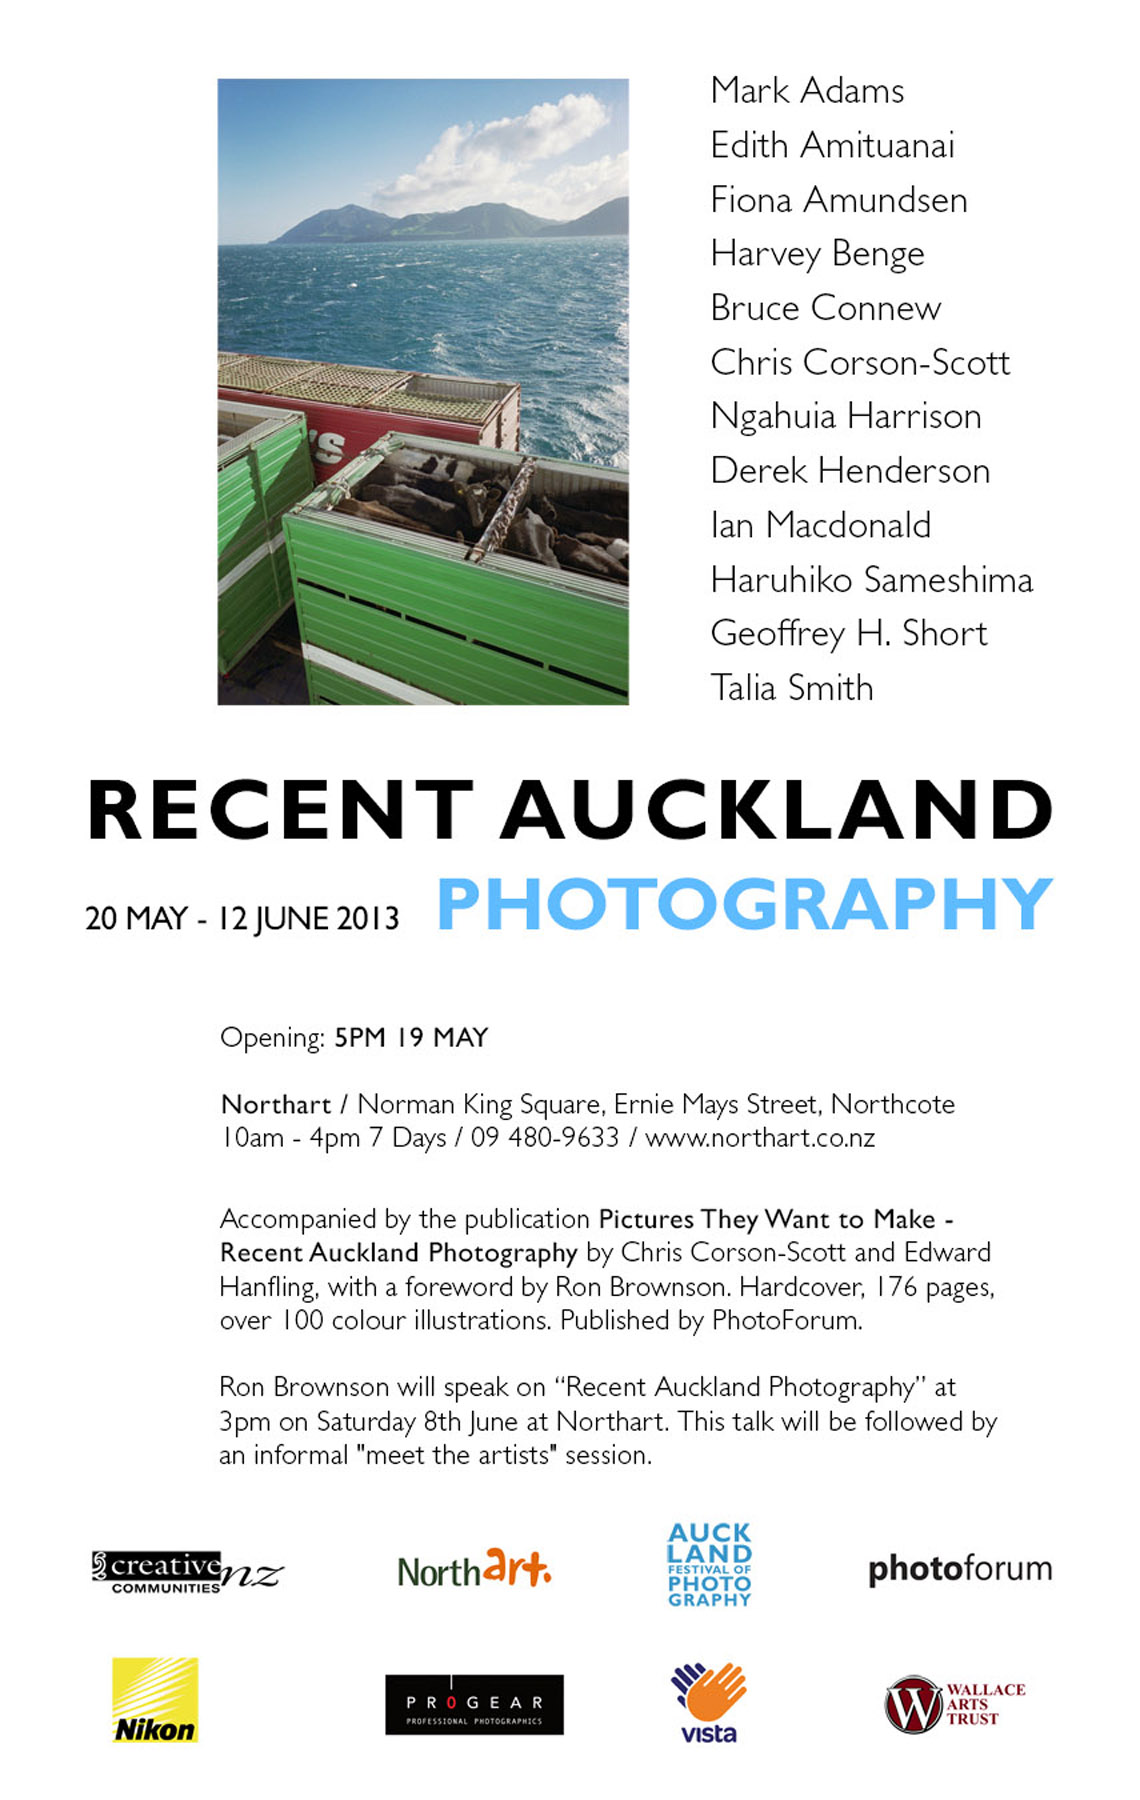 Recent Auckland Photography exhibition May 19–June 12, Northar